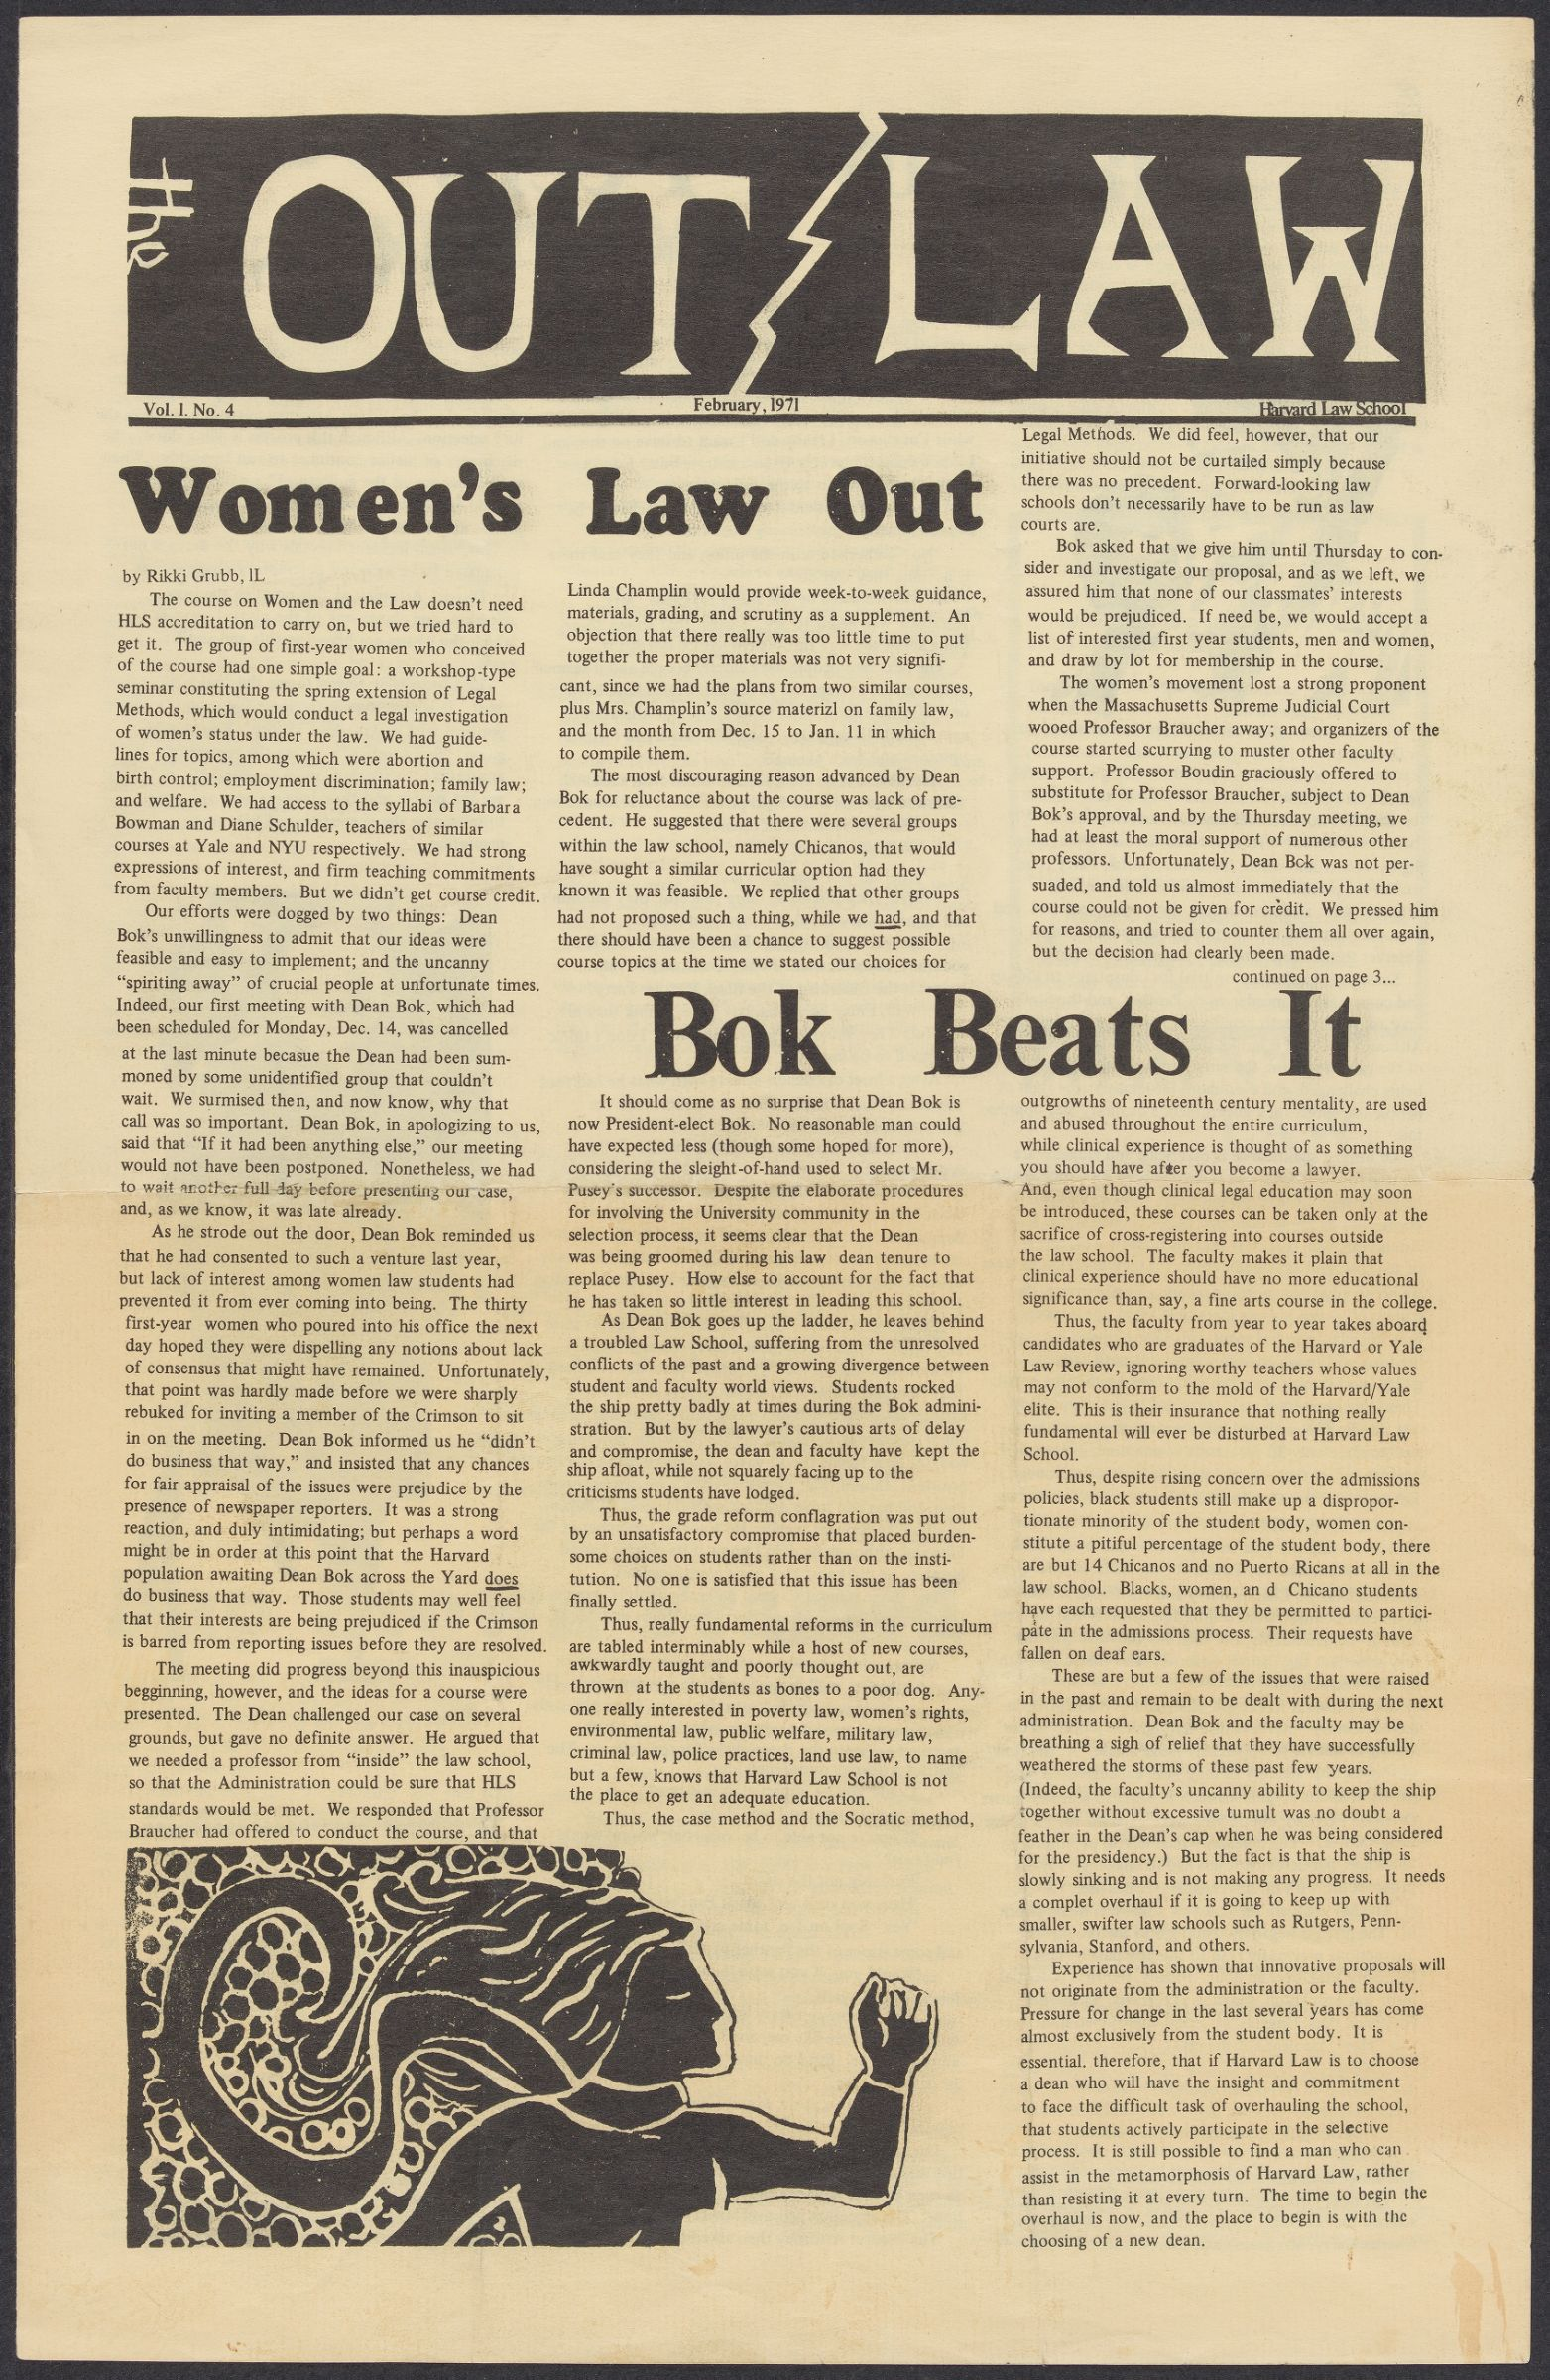 The Outlaw, v. 1, n. 4, February 1971 published by the Outlaw Collective at the Harvard Law School